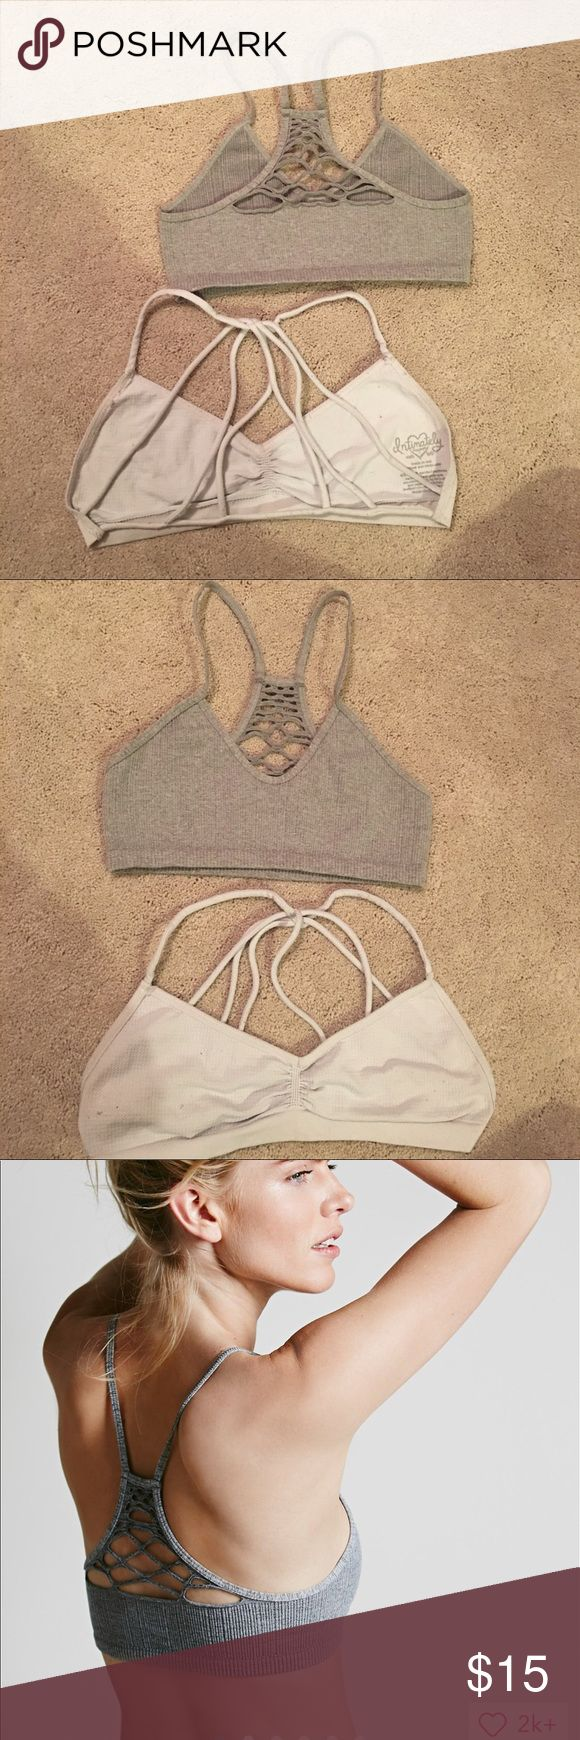 Bralette bundle (baby razorback) & other Sizes xs/s (it's a double size) they were both 20 each Free People Intimates & Sleepwear Bras